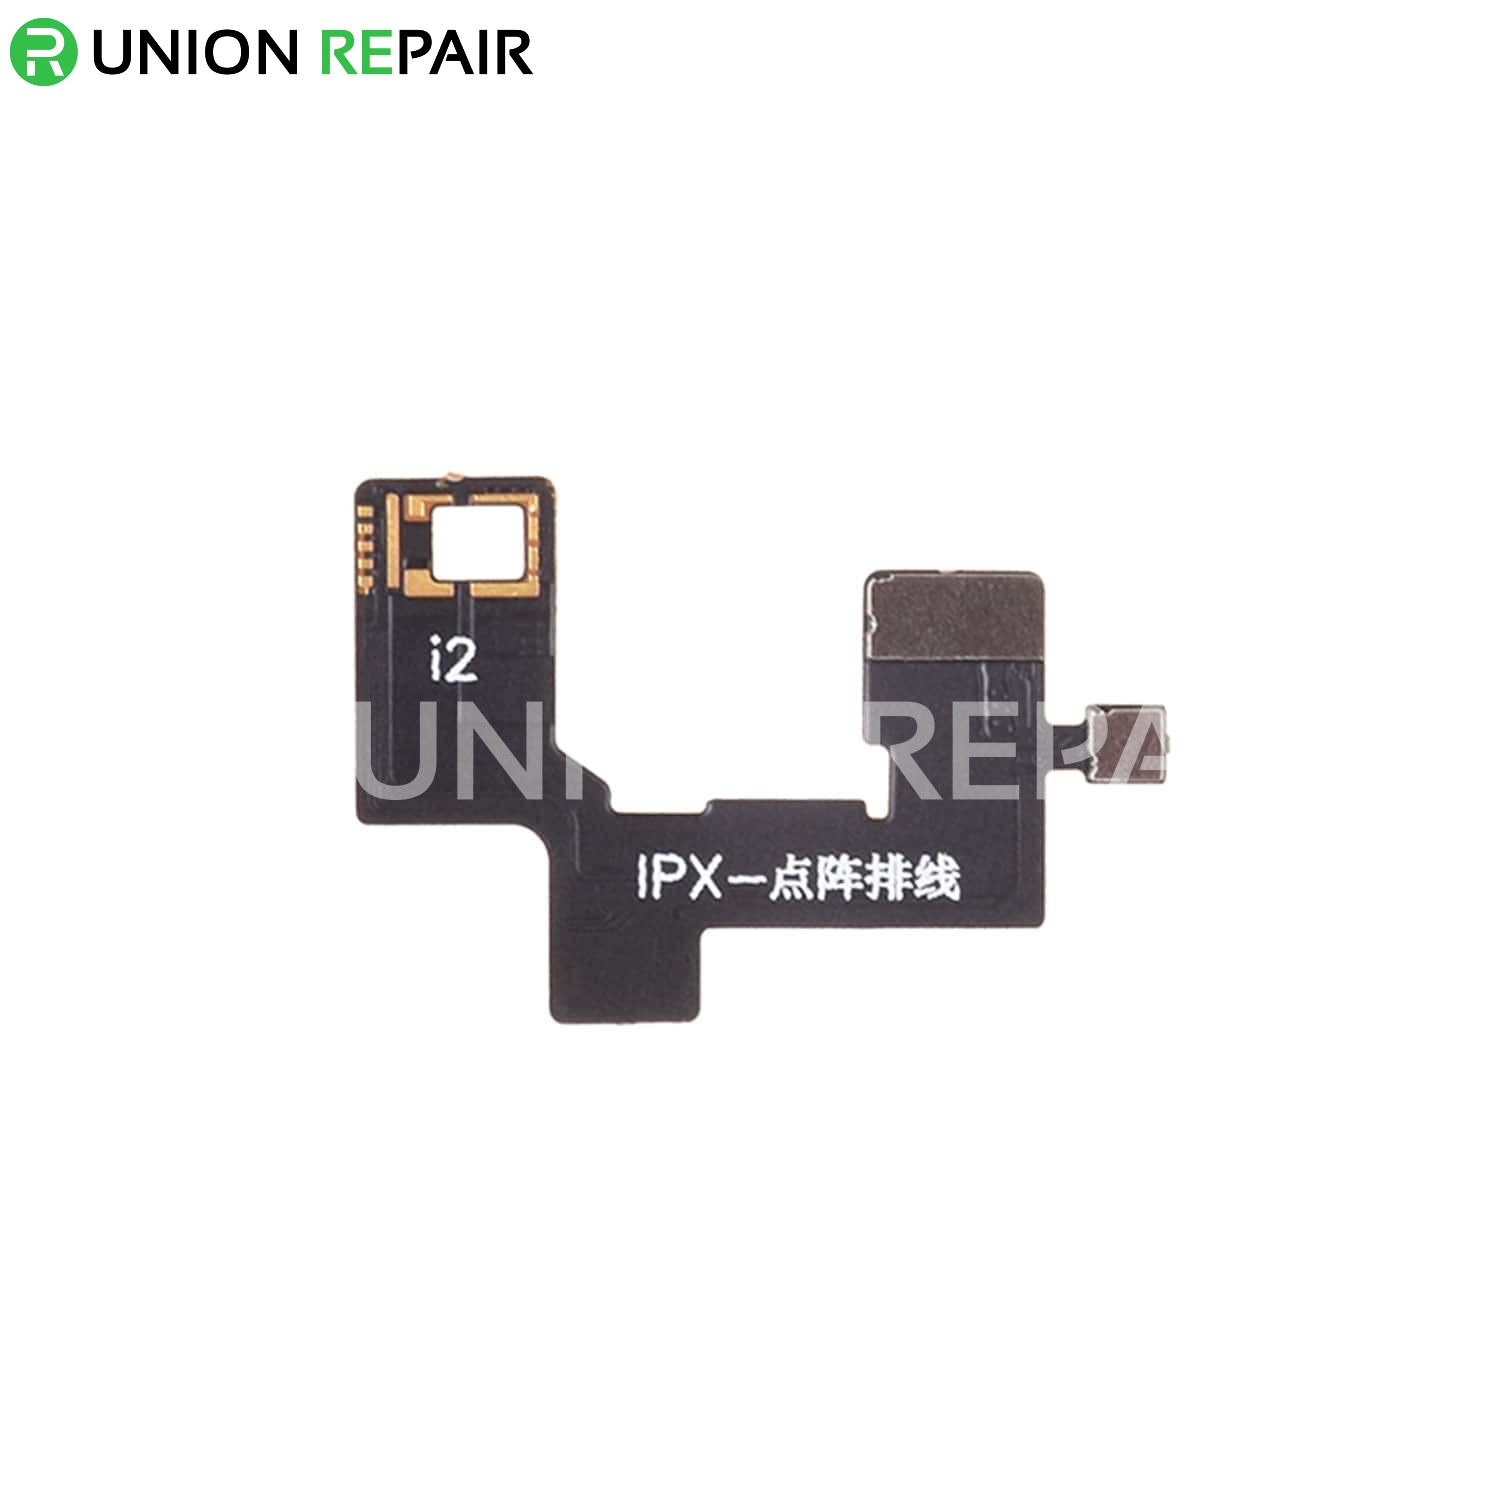 i2C FACE ID V8 Programmer Fixture for iPhone X/XS/XsMax/XR/11/11Pro/11ProMax, Condition: Cable for iPhone X